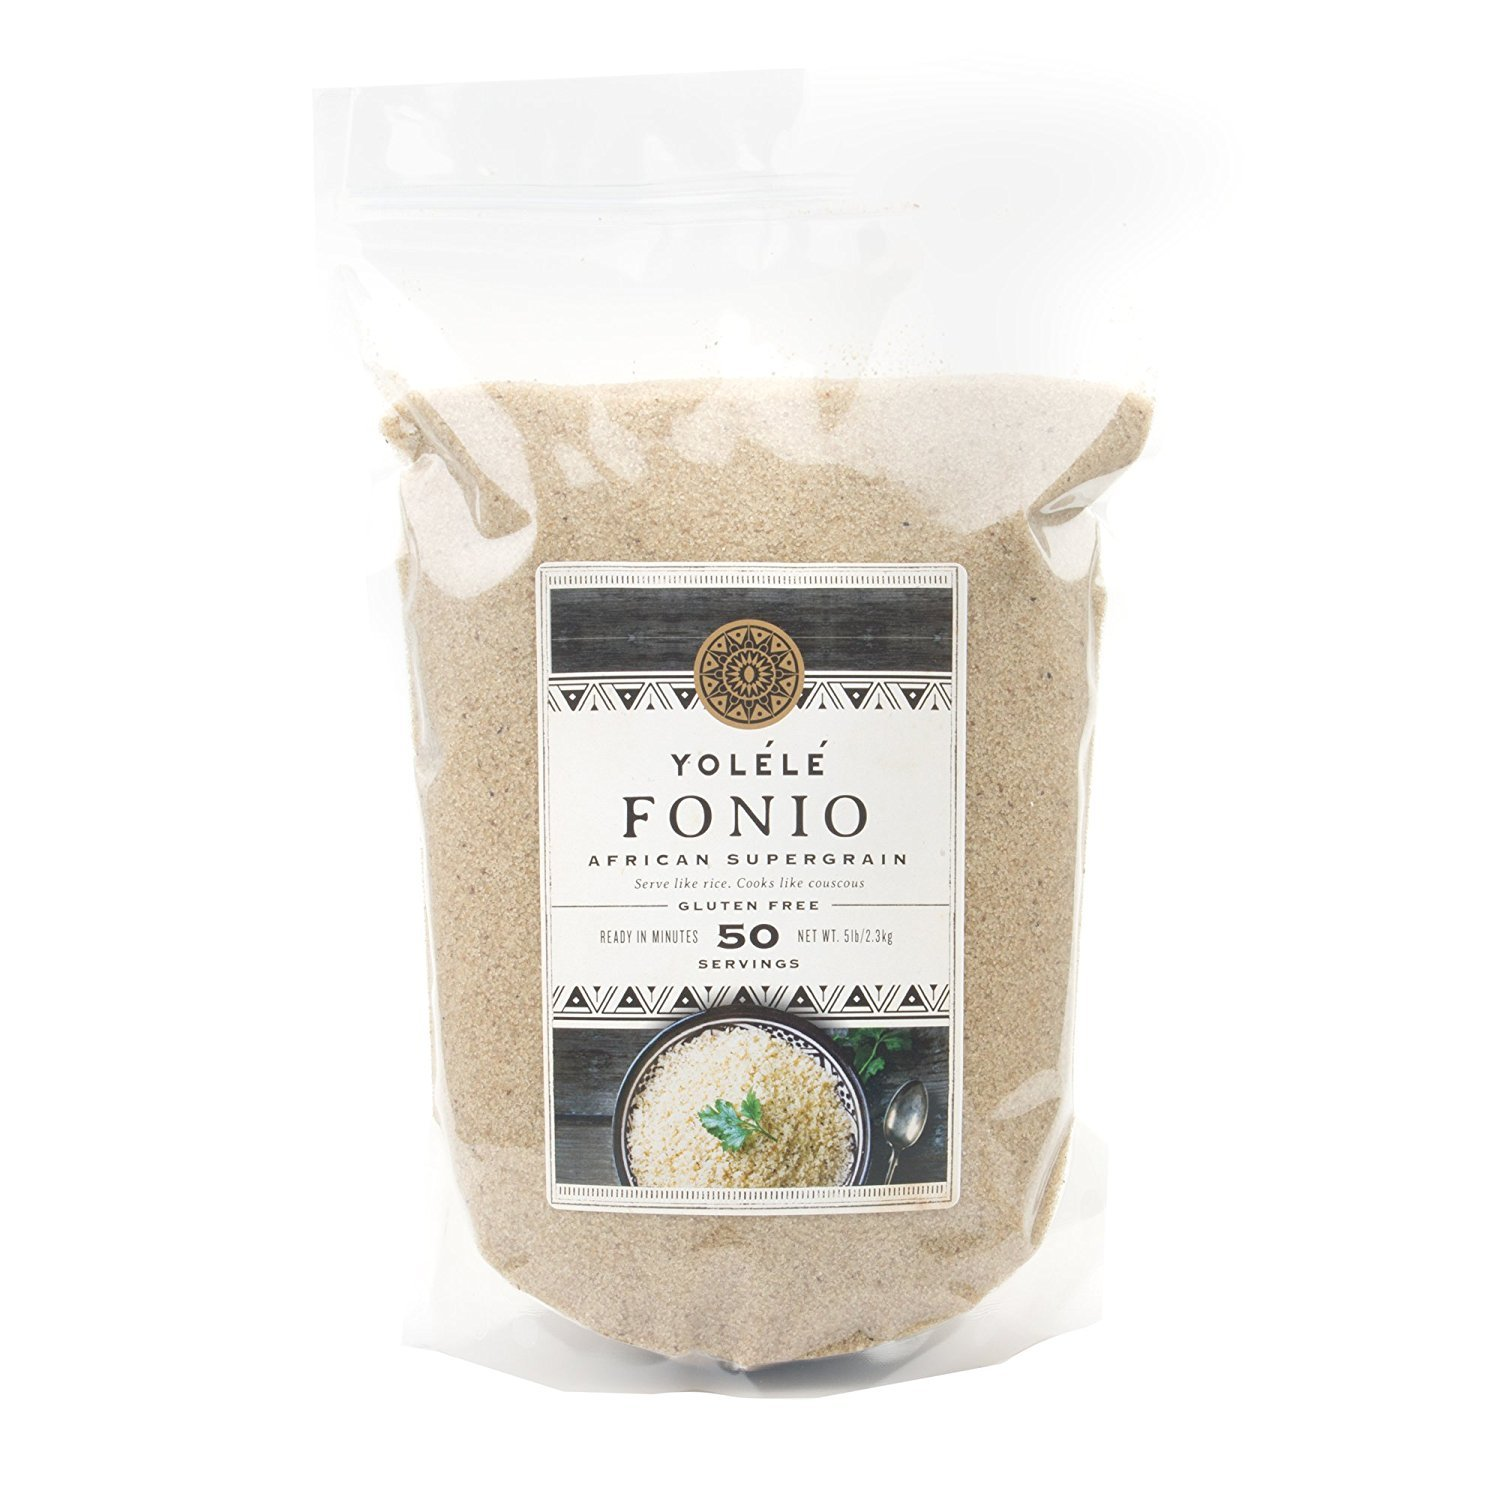 Yolele Fonio African Ancient Grain Super Food High Protein Gluten-Free Fast Cooking Vegan Premium Quality 50 Servings Bulk 5 Lb Pouch (80-Ounce) by Assortit